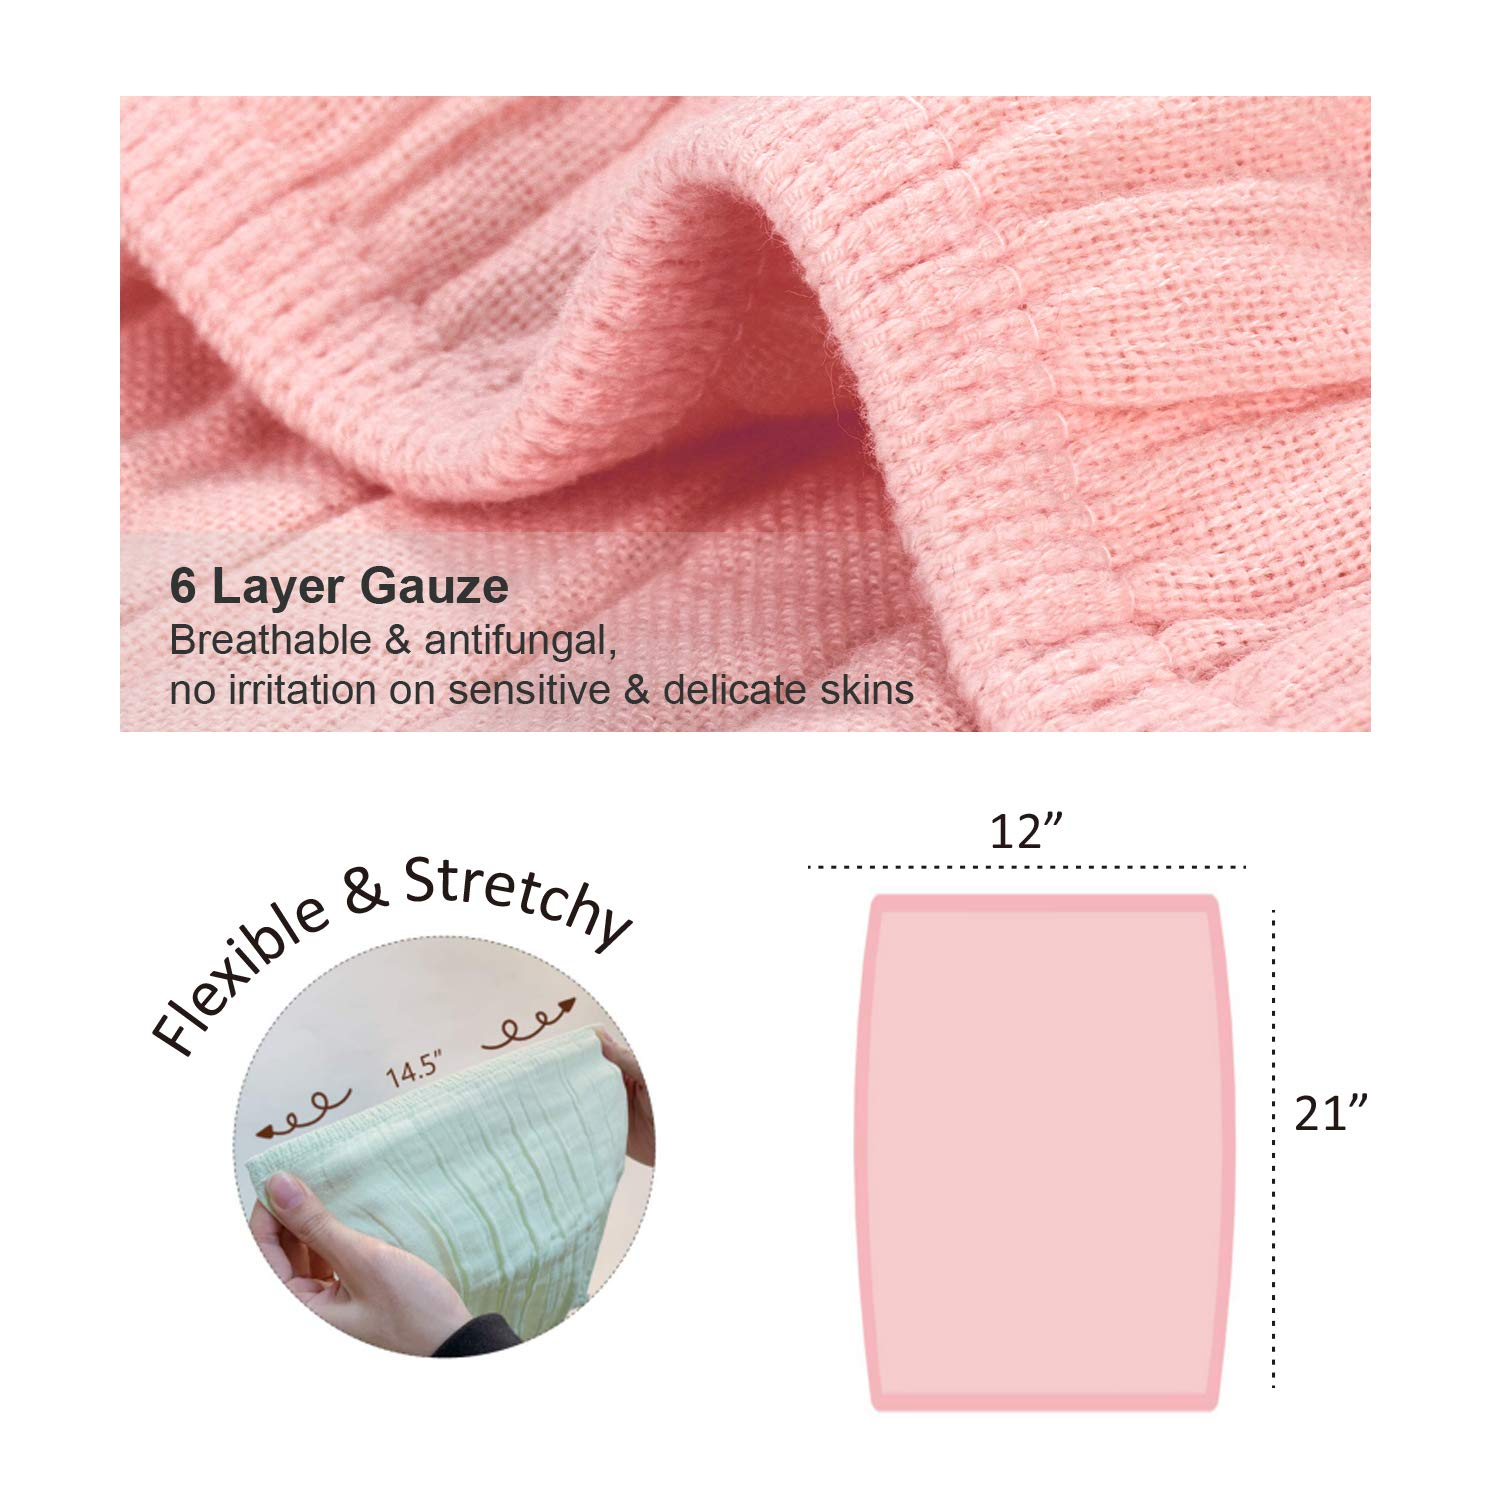 Soft Absorbent Kids Washcloths 21x12 Baby Shower Gift Reusable Burp Washrags for Newborns Toddlers Boy Girl Spit-up Cleaning Cloths Burp Cloths Baby Muslin Cotton Burping Towels 4 Pack